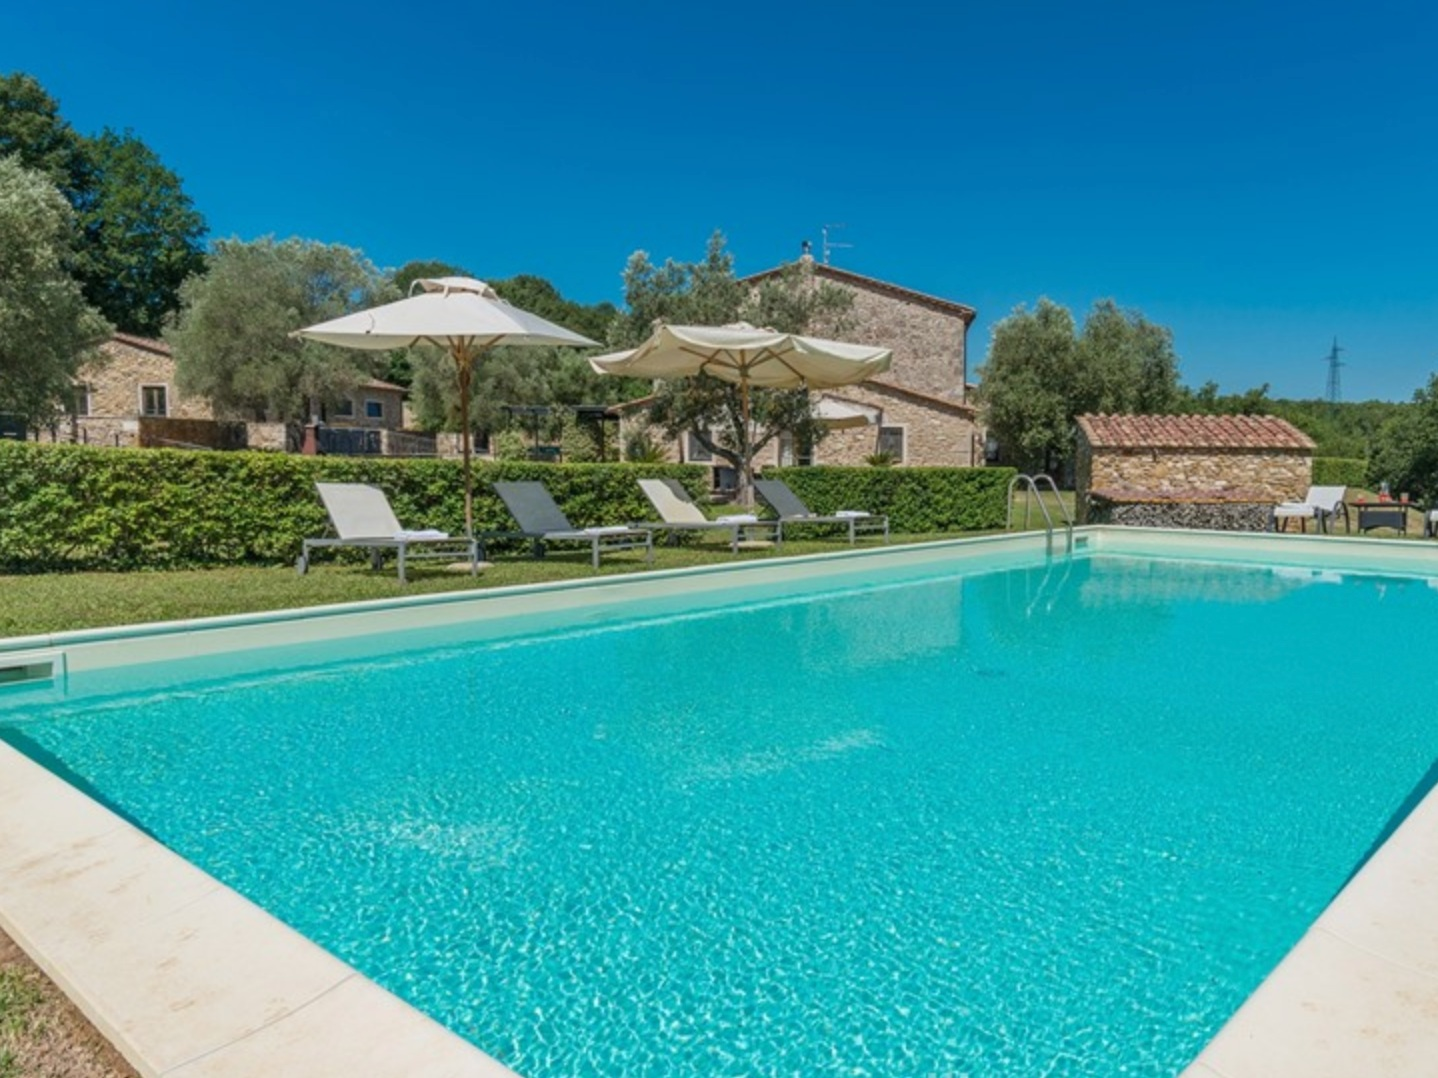 COUNTRY HOUSE - MAREMMA - 4 BEDROOMS - 5 BATHWEEKLY PRICE FROM €1,220